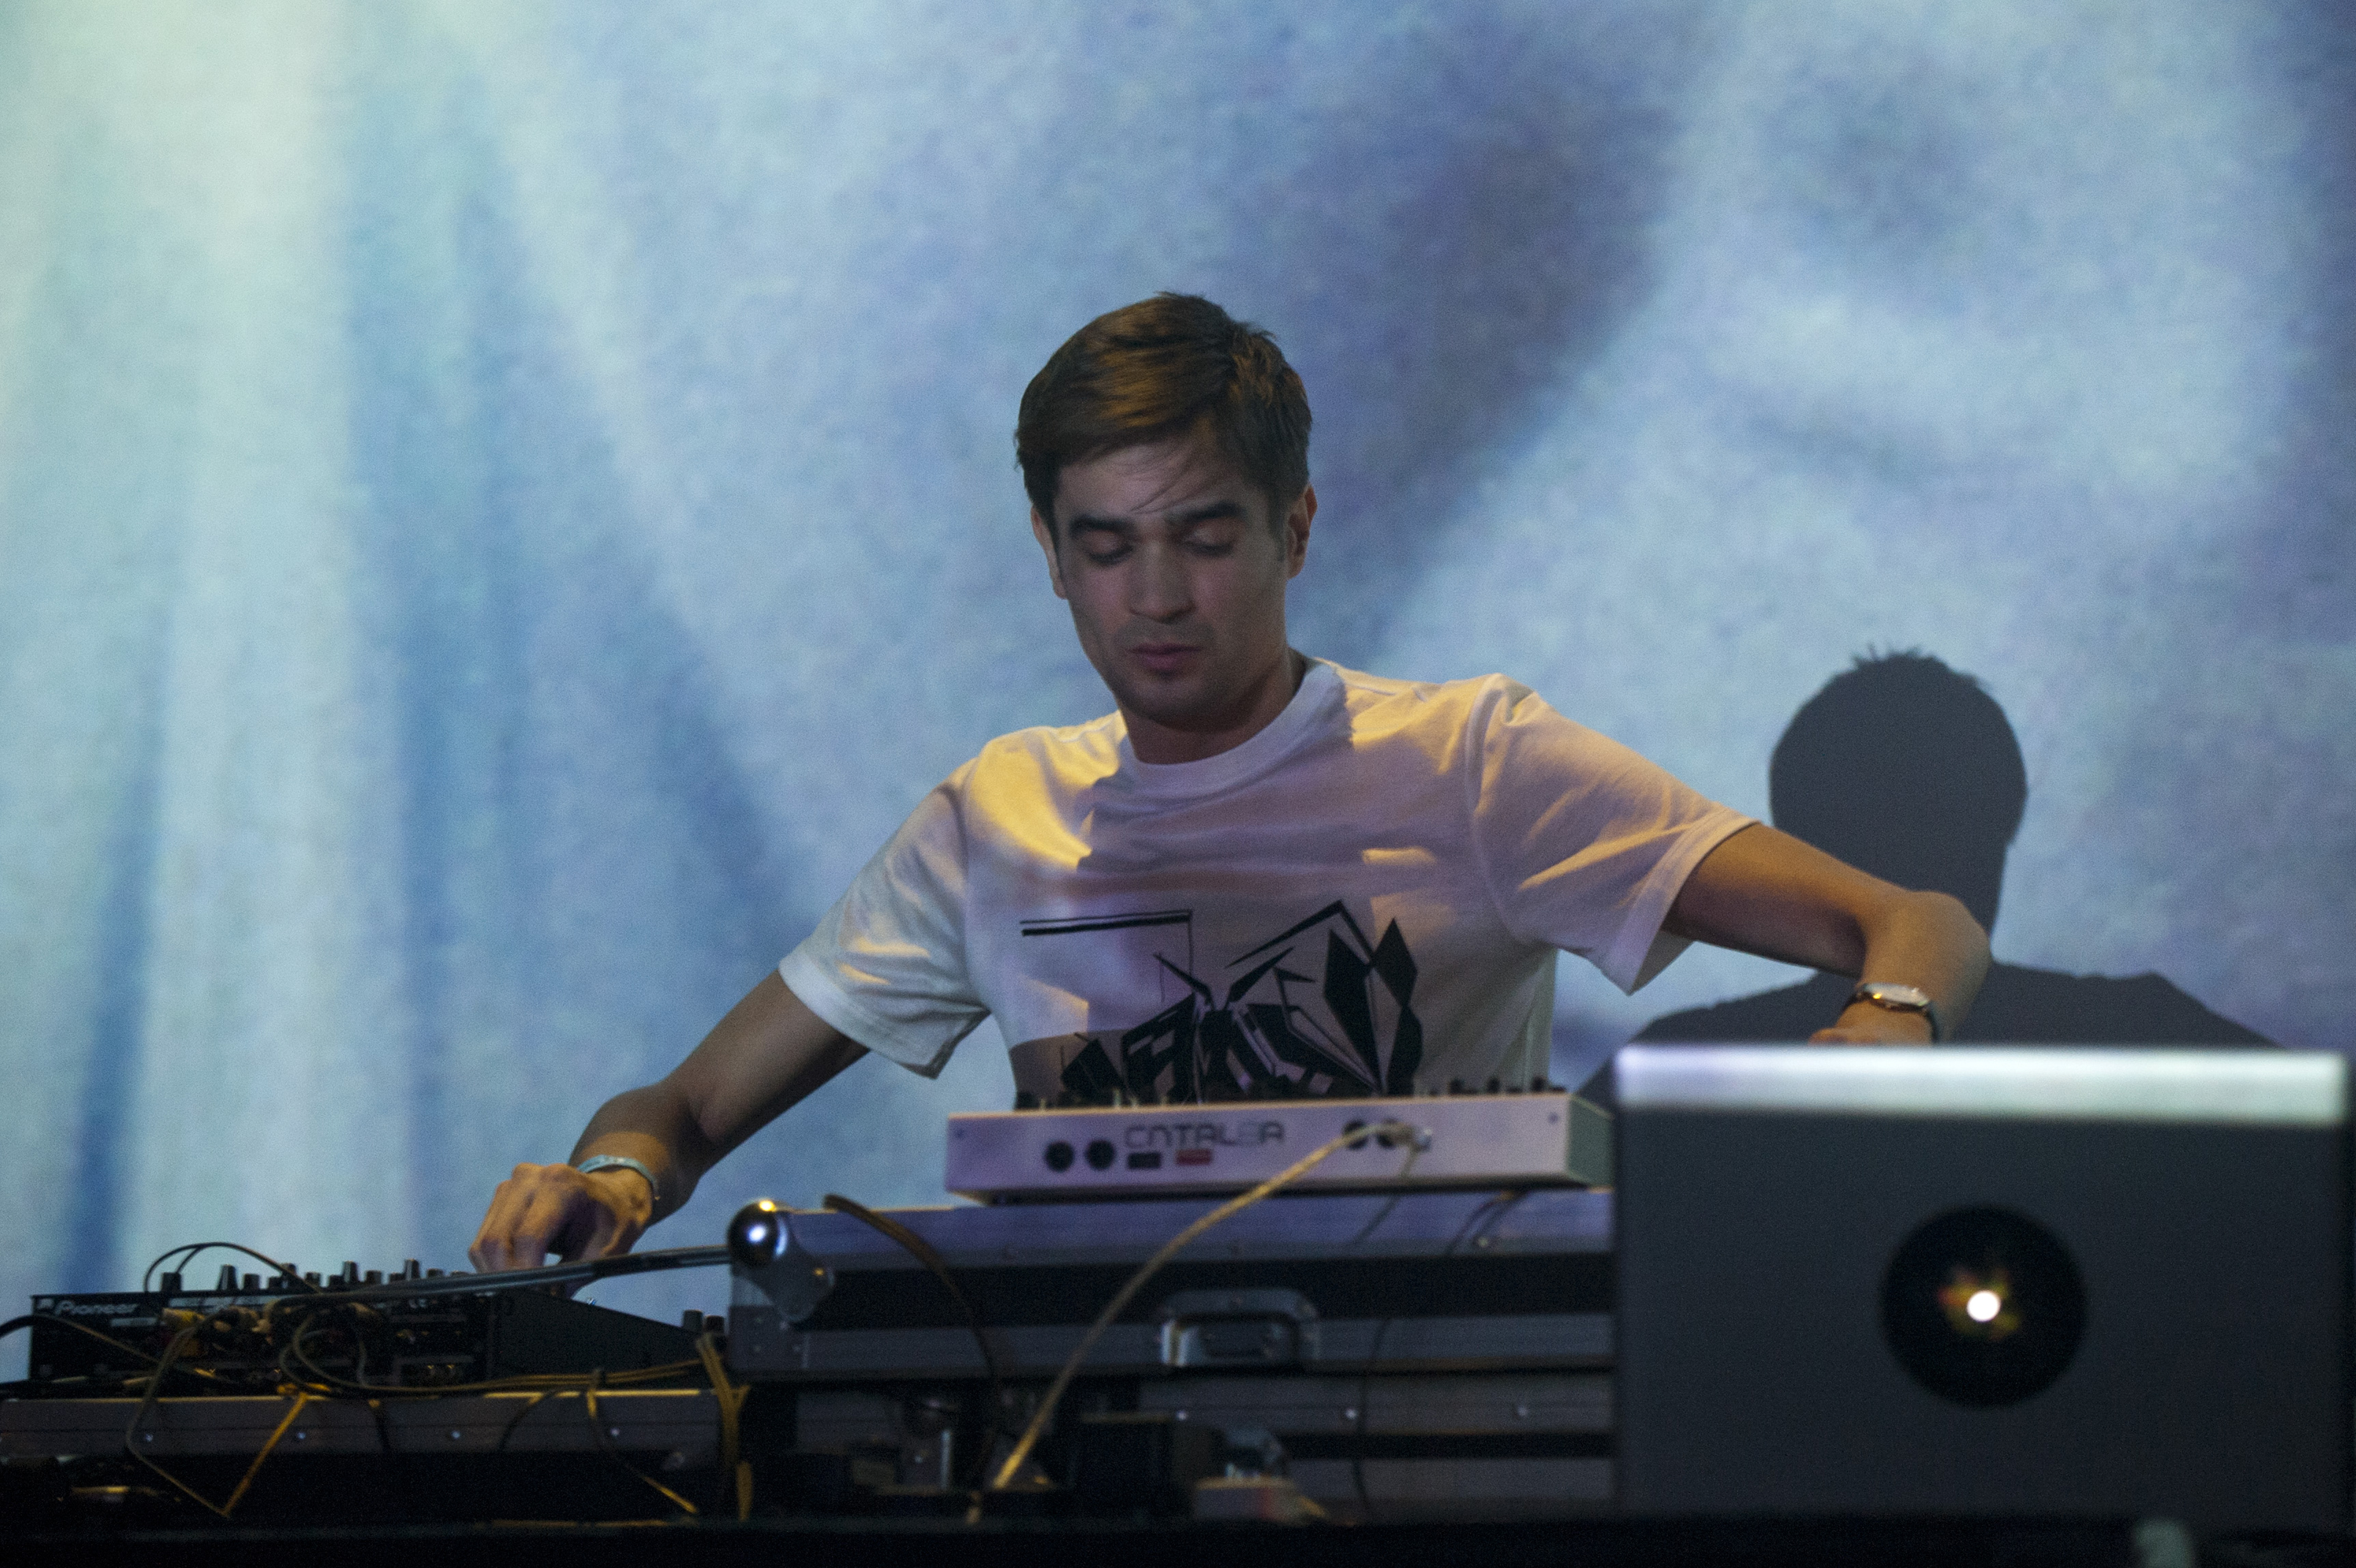 LONDON, UNITED KINGDOM - FEBRUARY 22: Jon Hopkins performs on stage at The Forum on February 22, 2014 in London, United Kingd